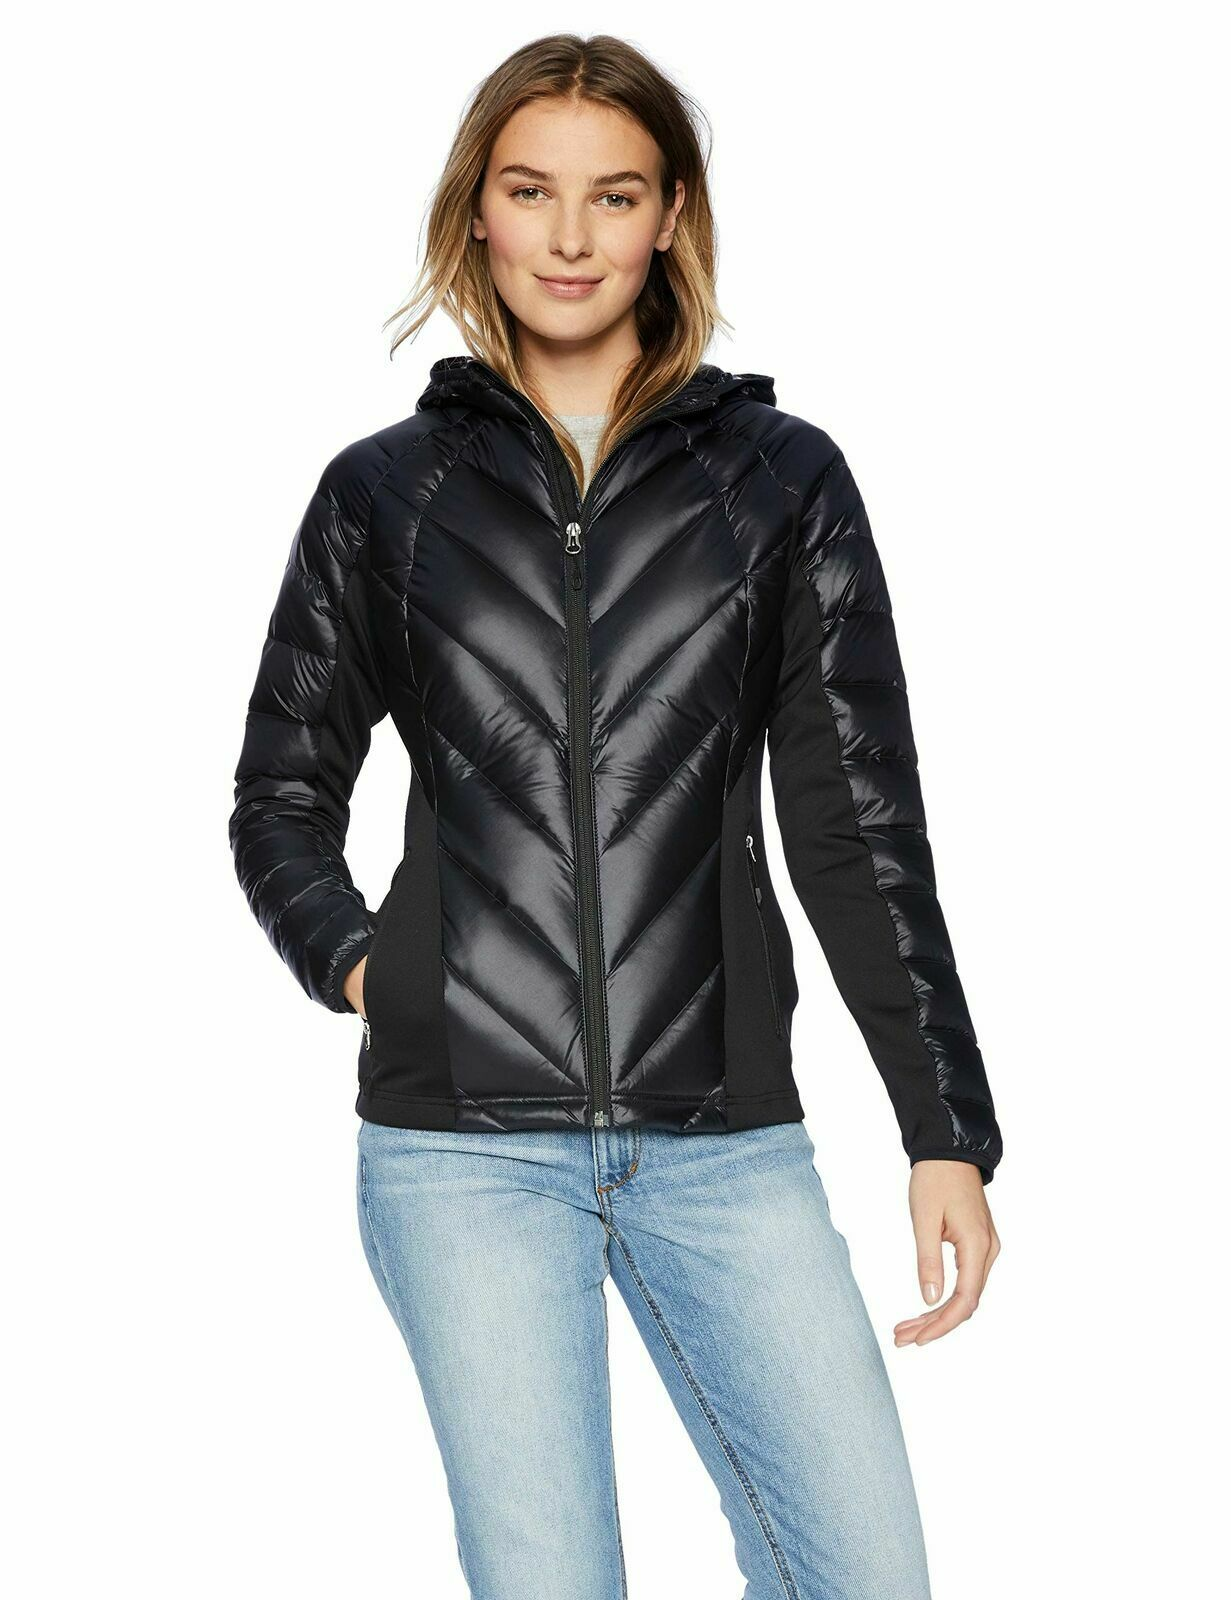 Spyder Women's Syrround DOWN Hybrid Hoody Jacket – Black, Medium Clothing, Shoes & Accessories